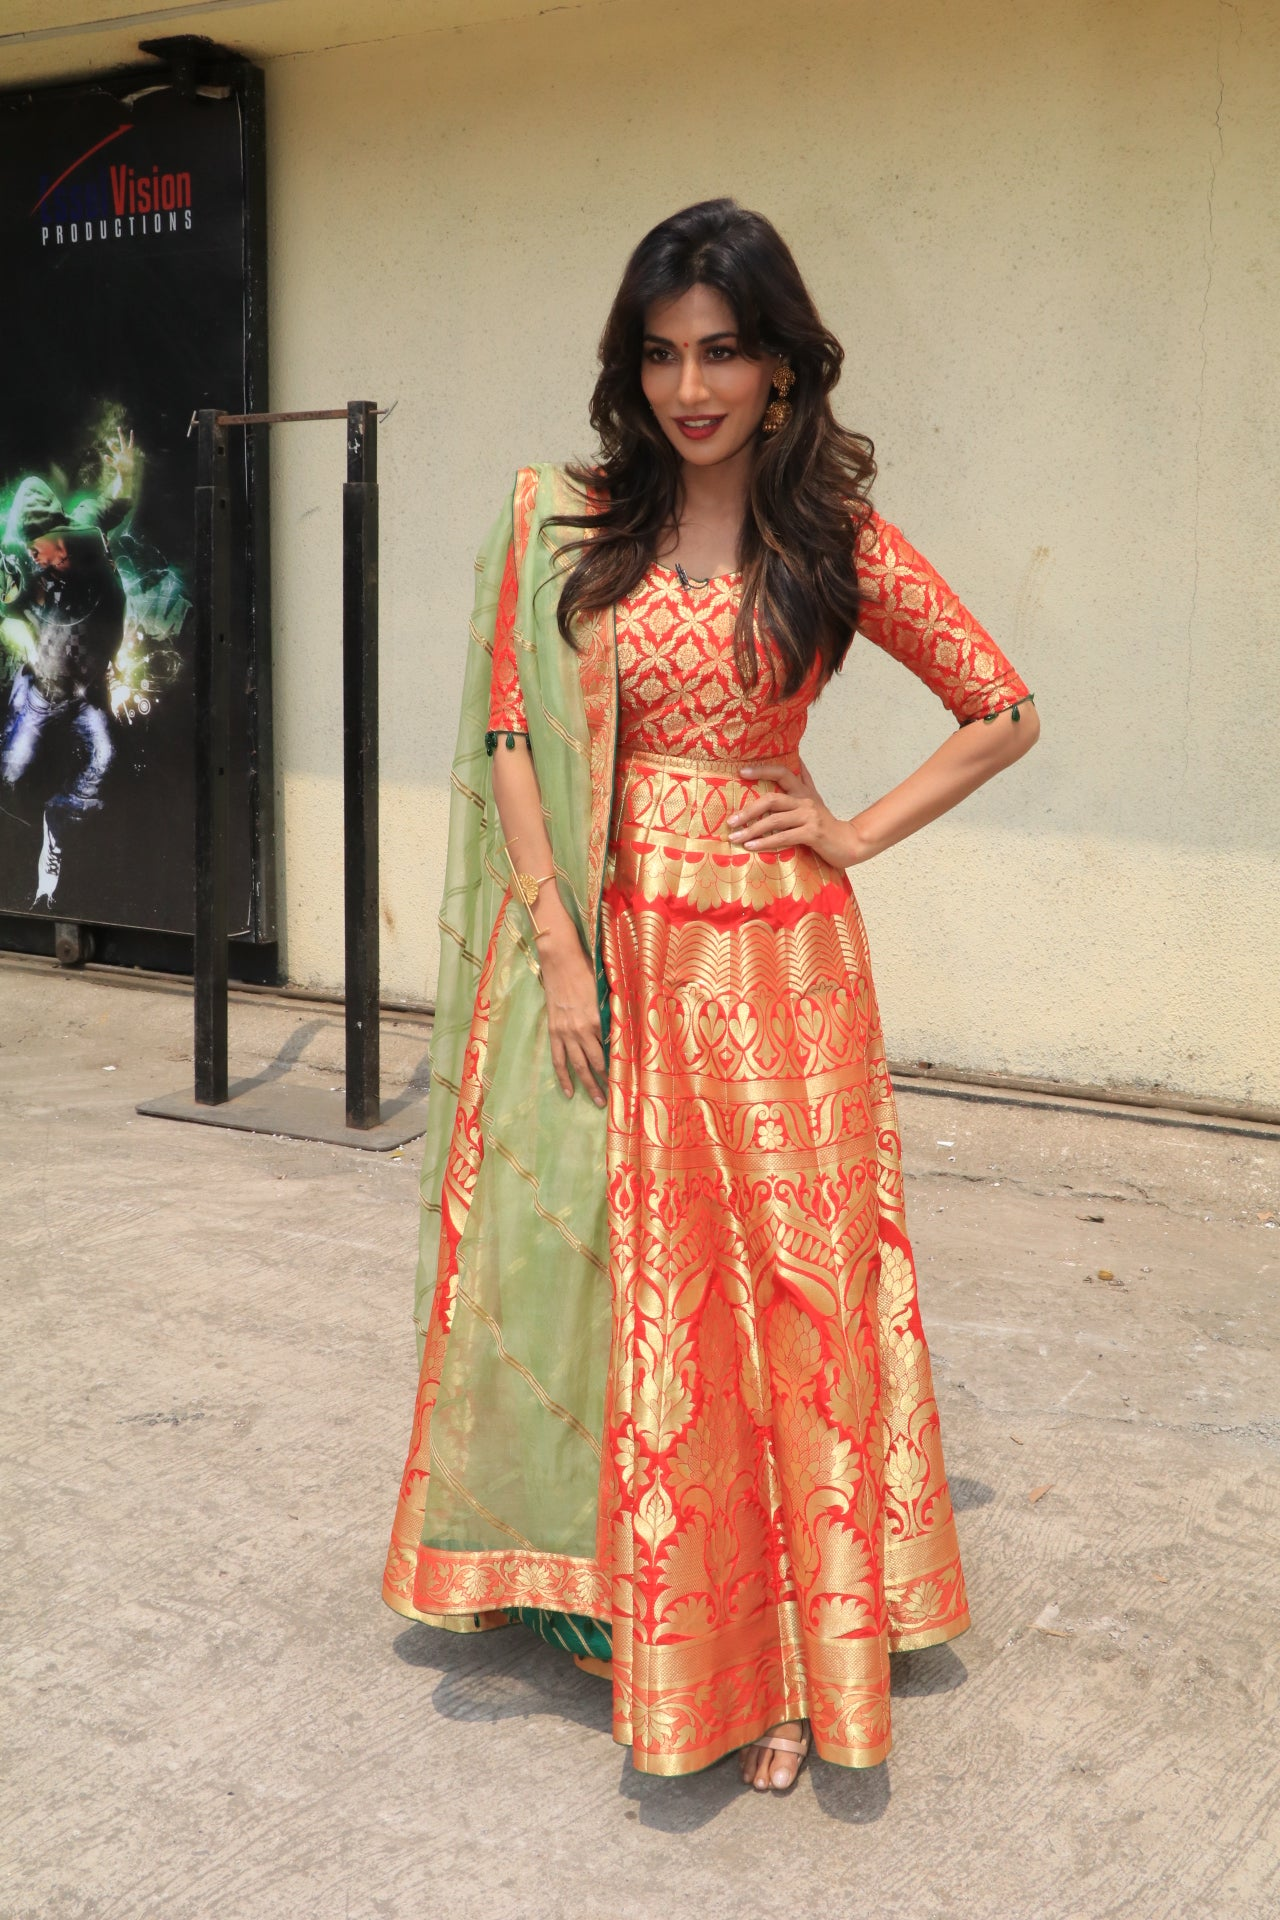 Chitrangda Singh looked beautiful in the orange Banarsi anarkali suit